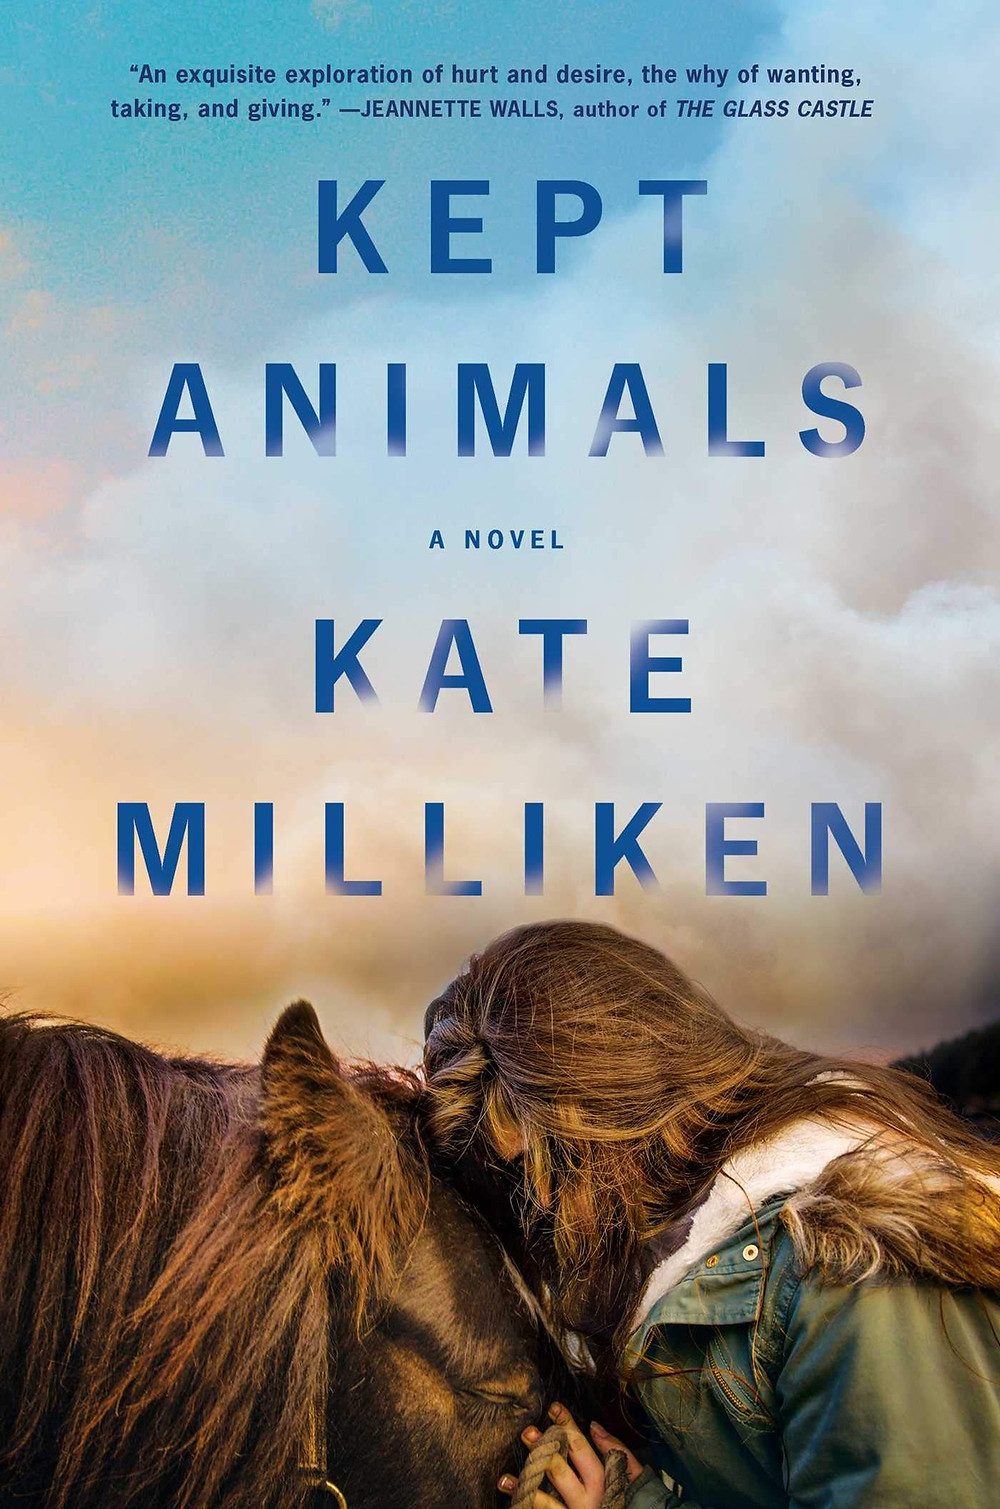 ept Animals By Kate Milliken 368 pages. 2020.